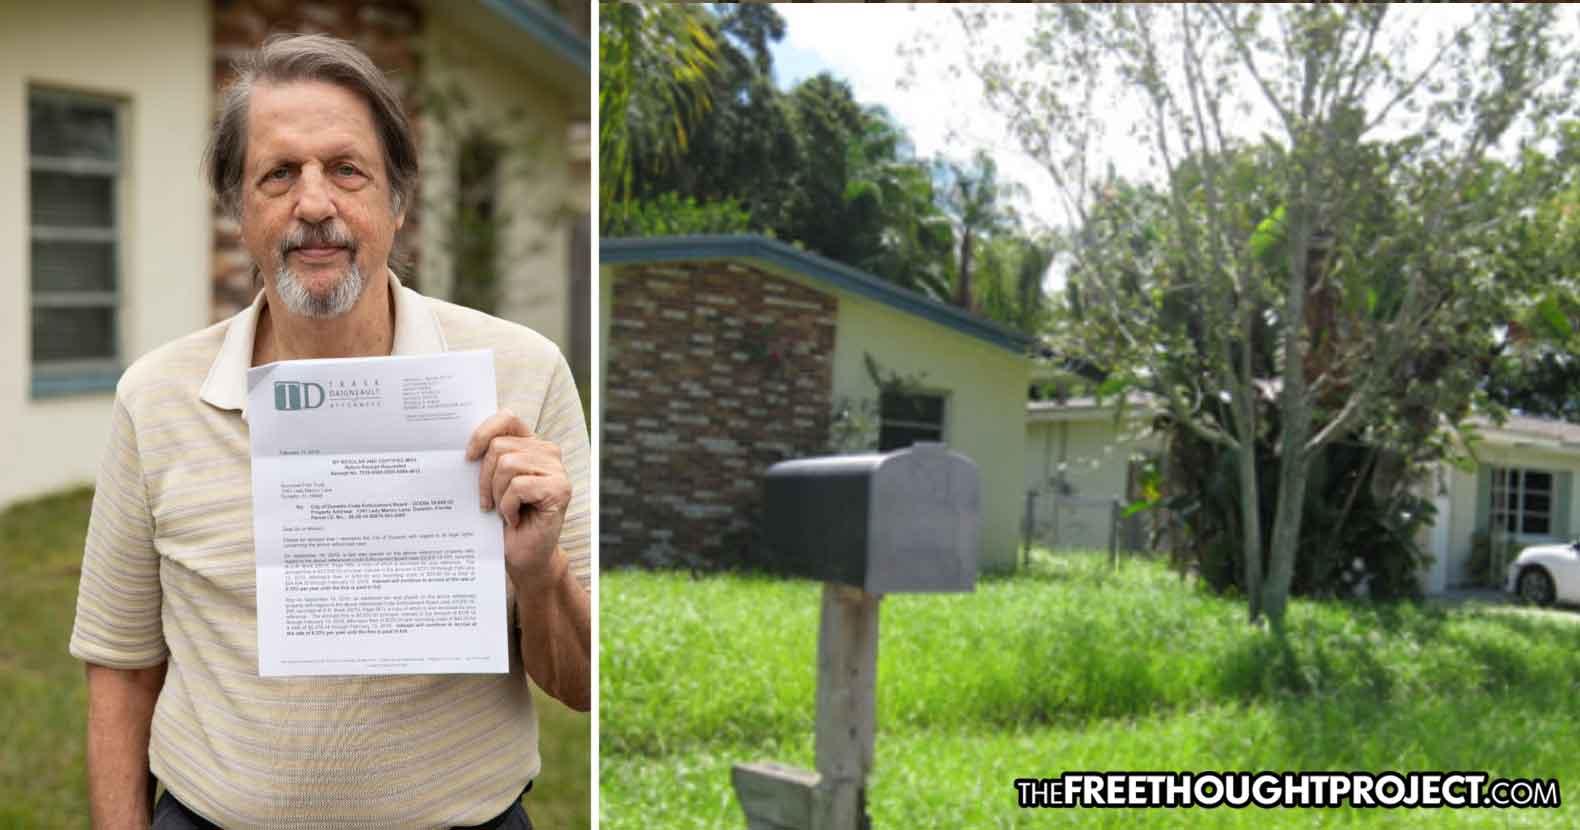 Photo of Gov't Fines Elderly Florida Man $30K, Trying to Steal His Home Because His Grass Was Too Tall